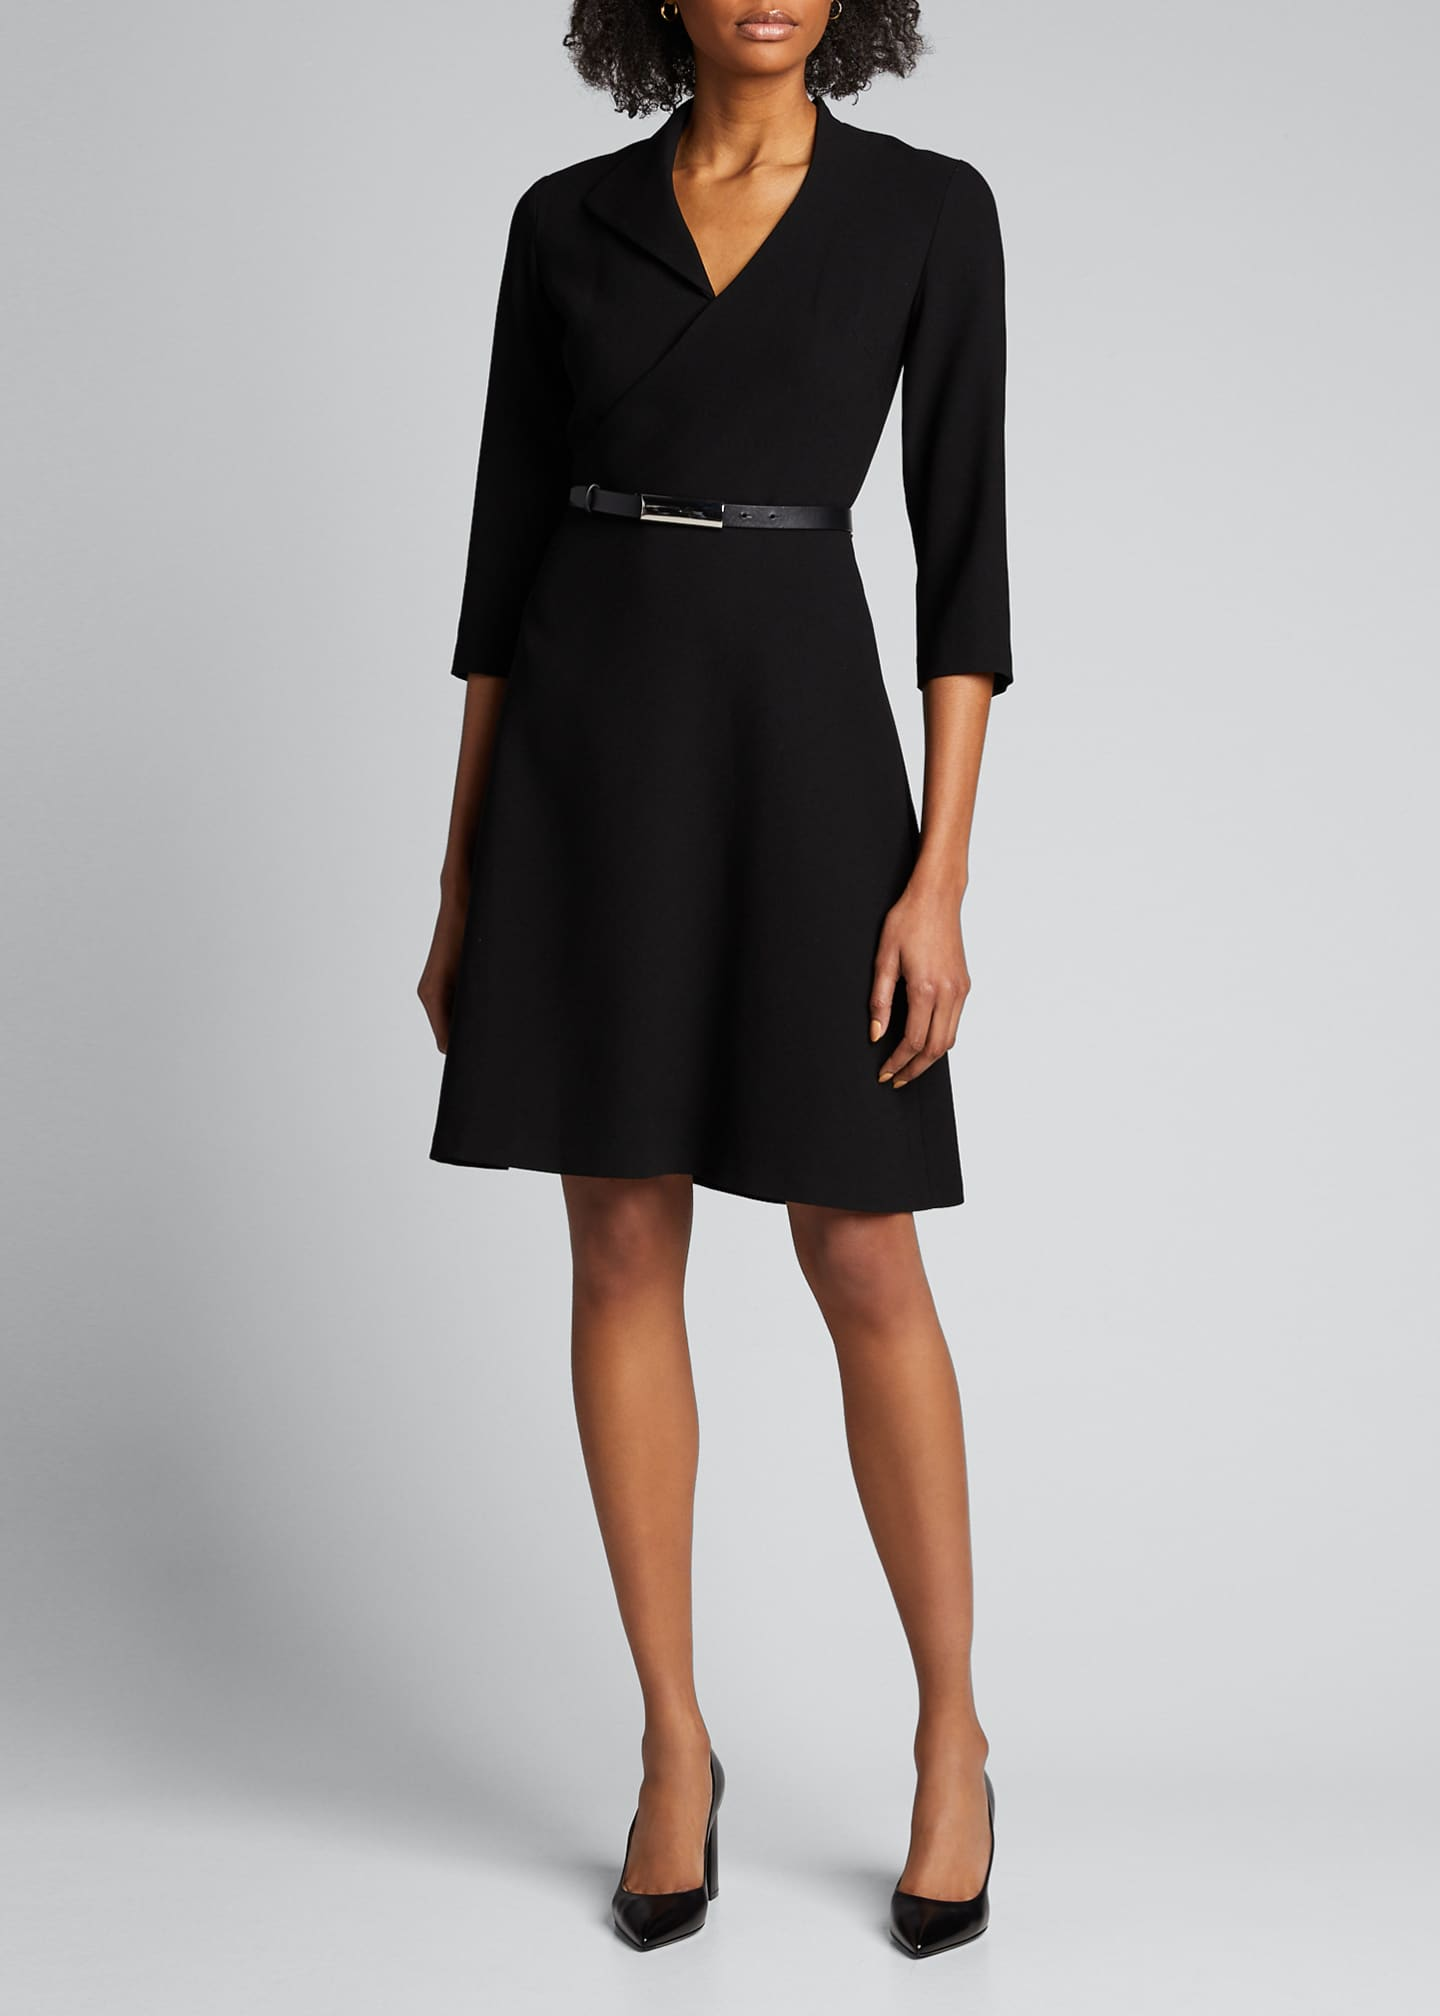 Image 3 of 5: Elodie Belted 3/4-Sleeve Crepe Dress